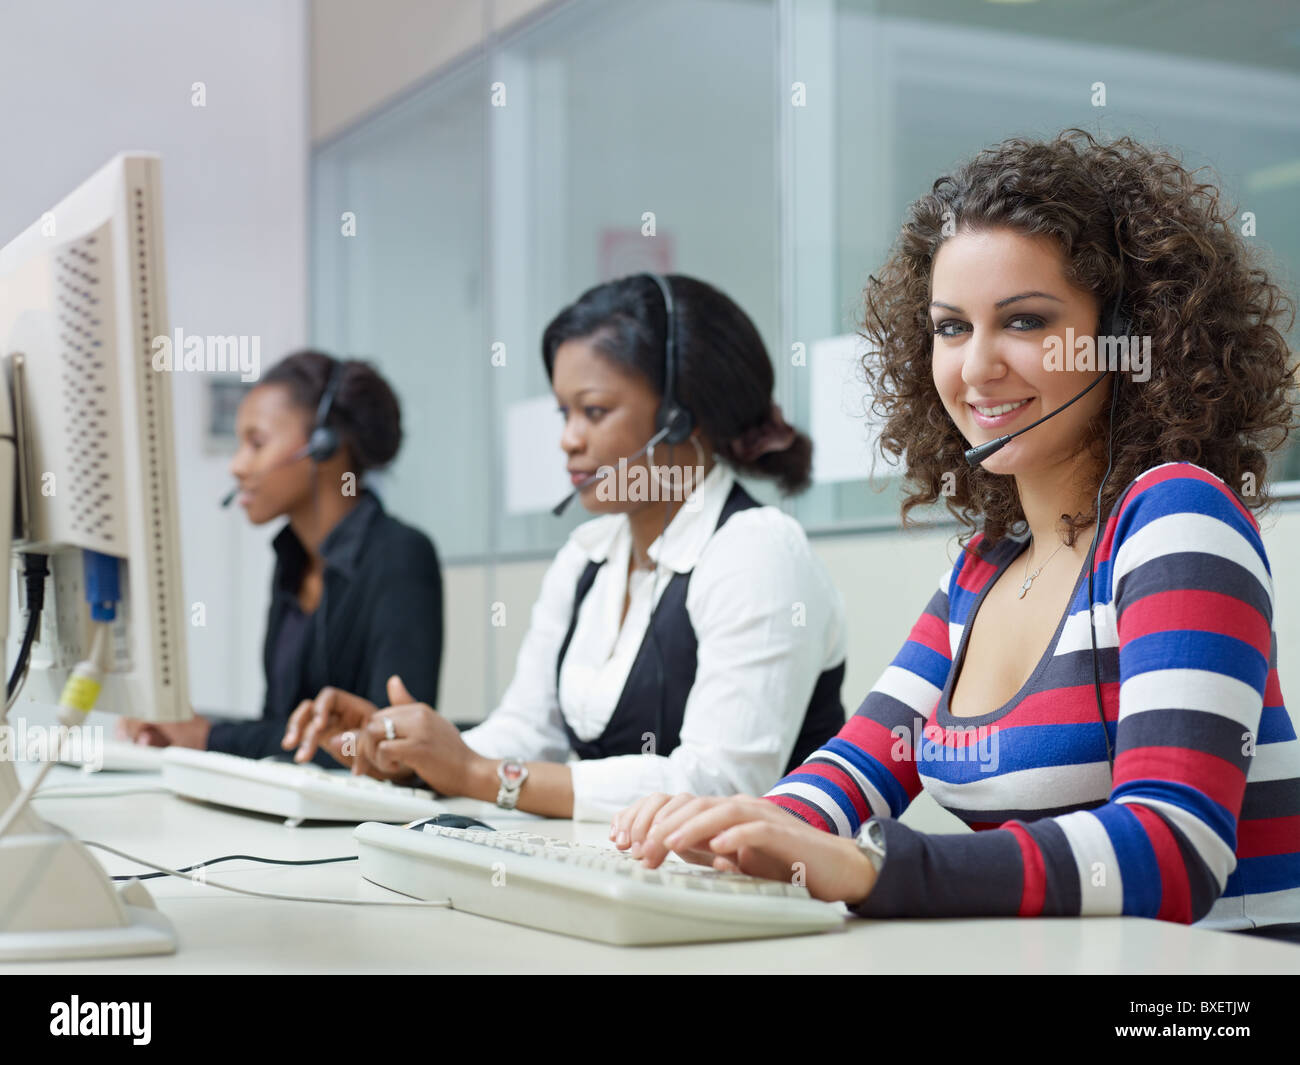 multiethnic group of female customer service representatives talking on the phone, with woman looking at camera. Stock Photo